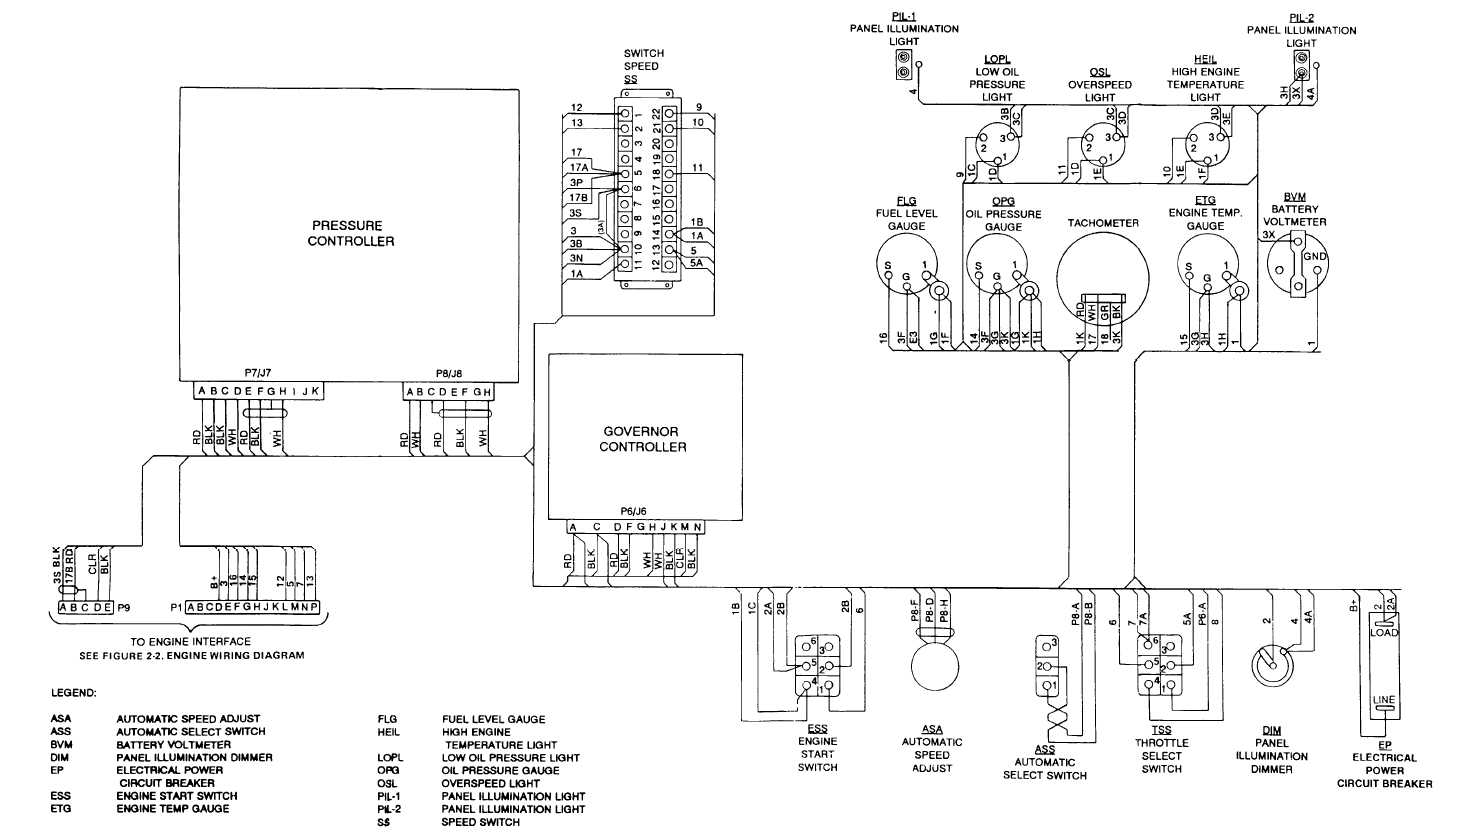 wiring diagram control panel wiring diagram readingrat net arc switch panel  wiring diagram ignition switch panel